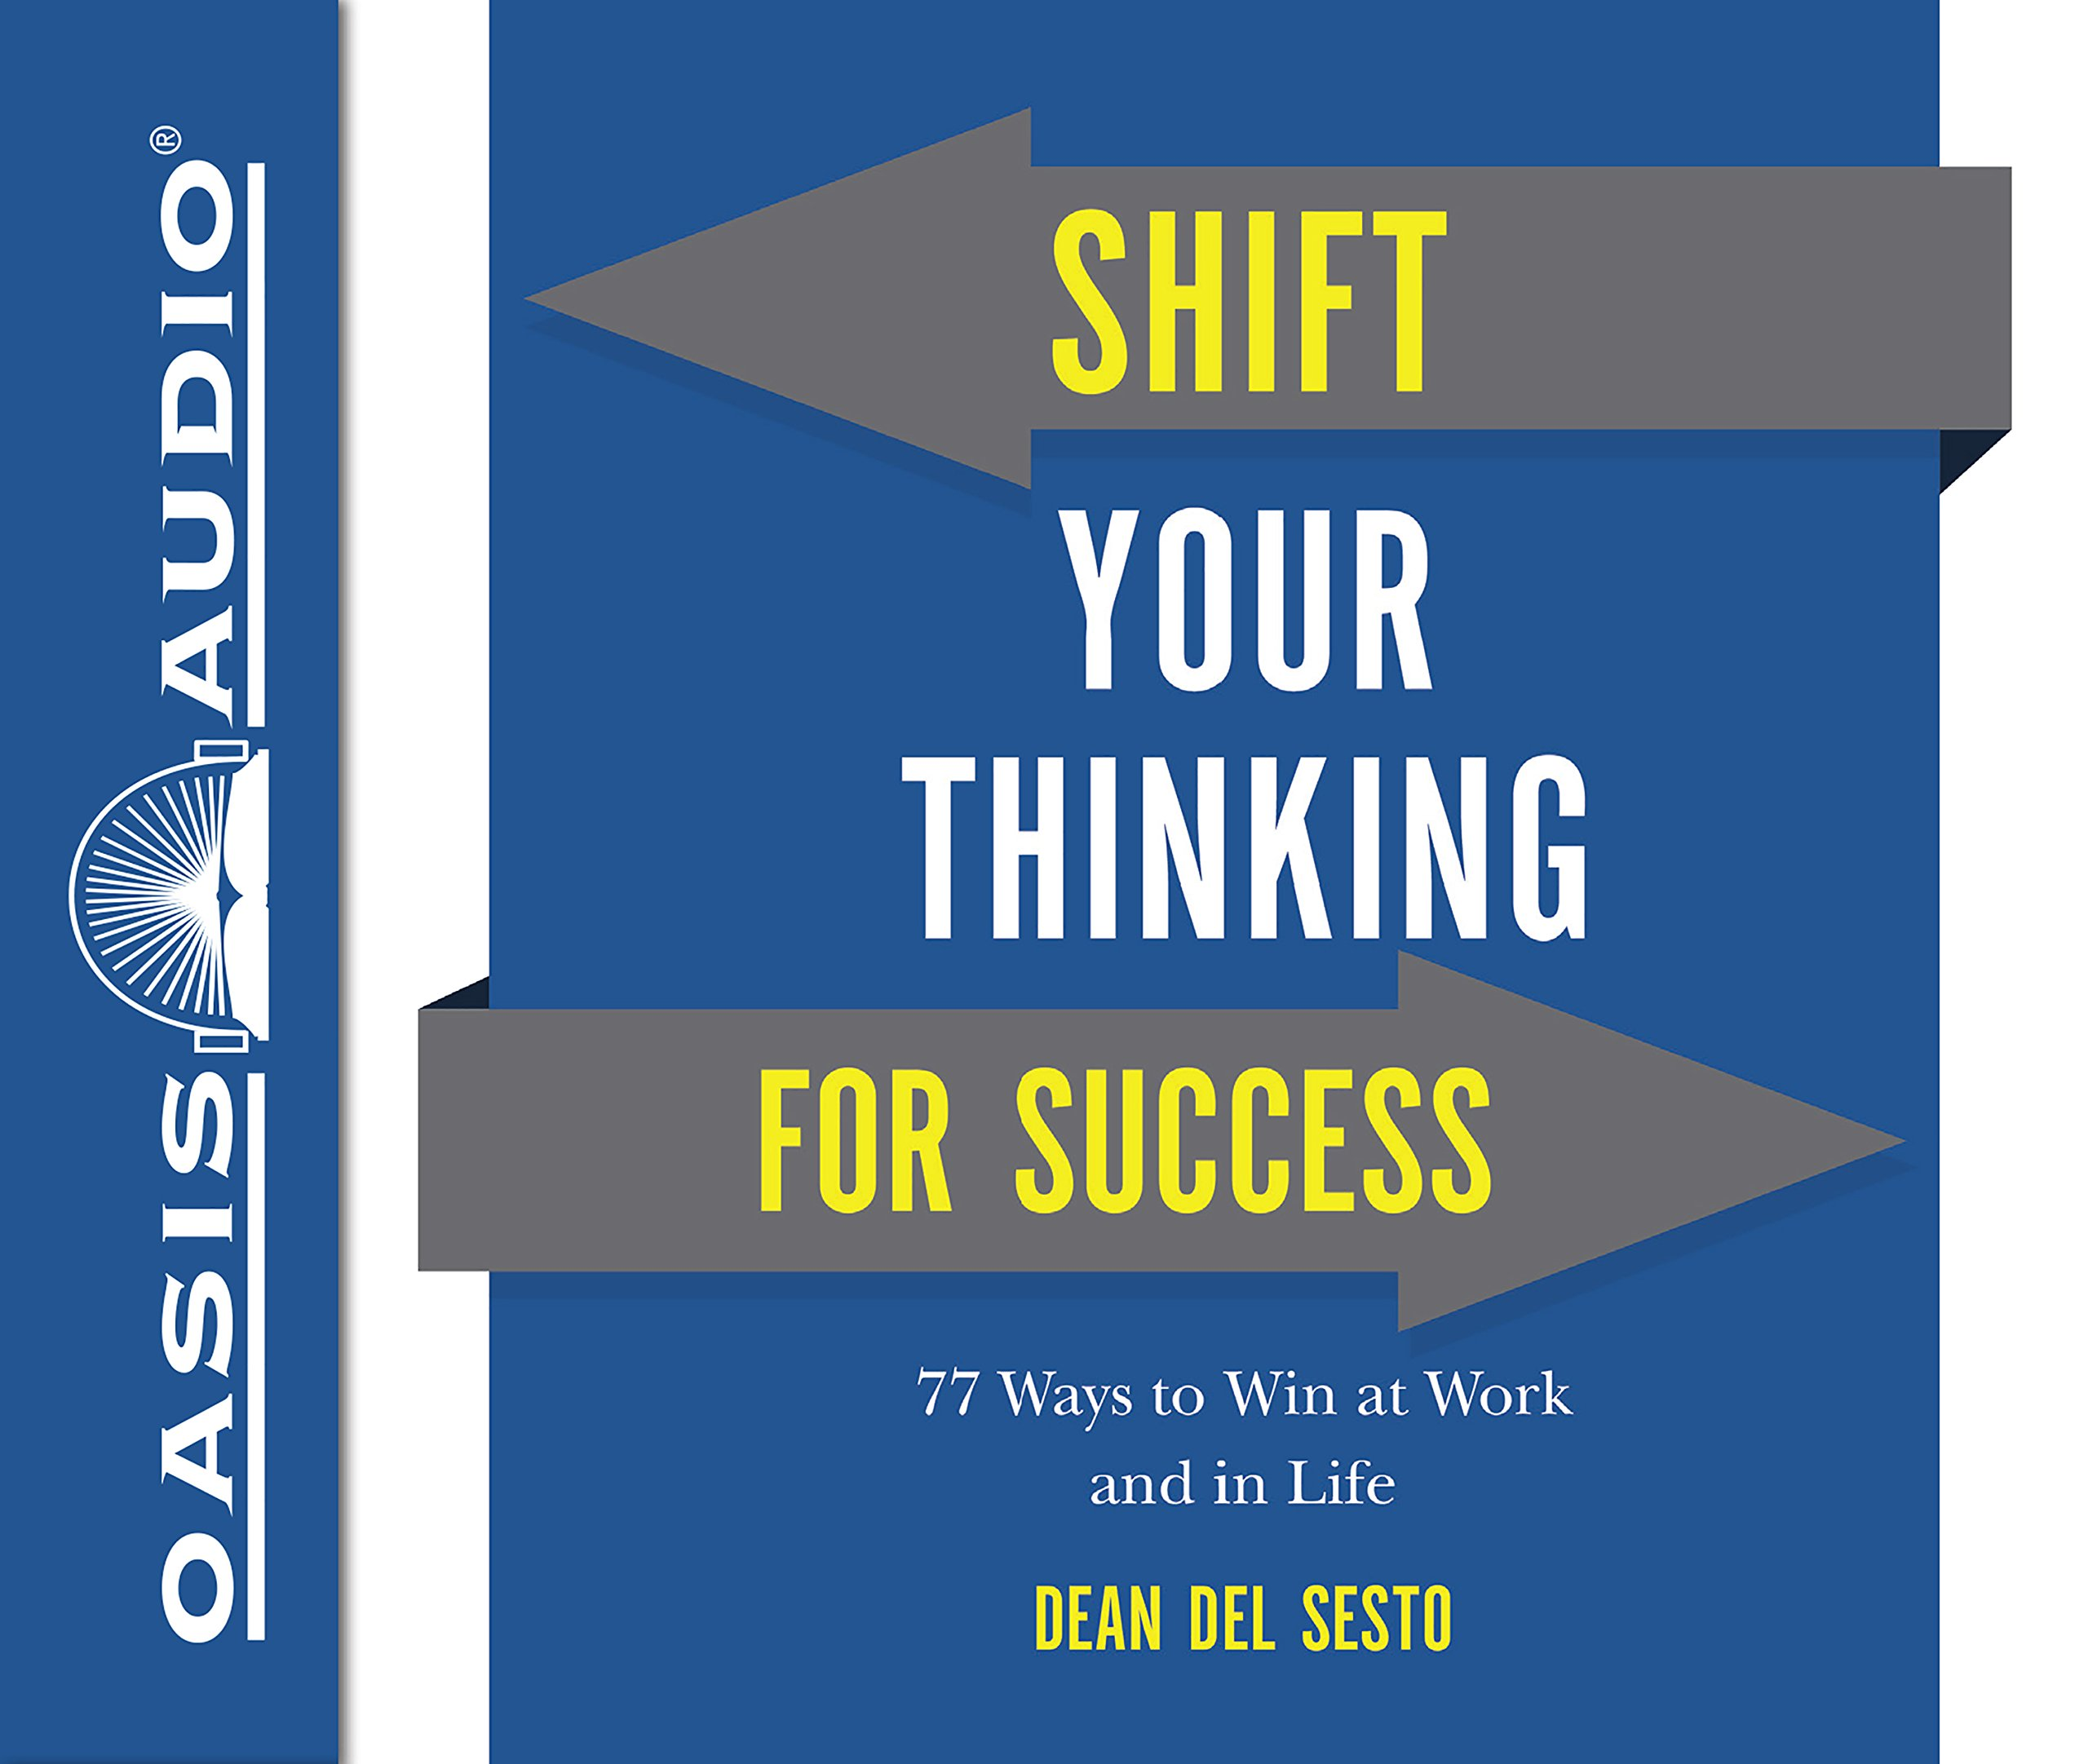 Shift Your Thinking For Success (Library Edition): 77 Ways to Win at Work and in Life PDF